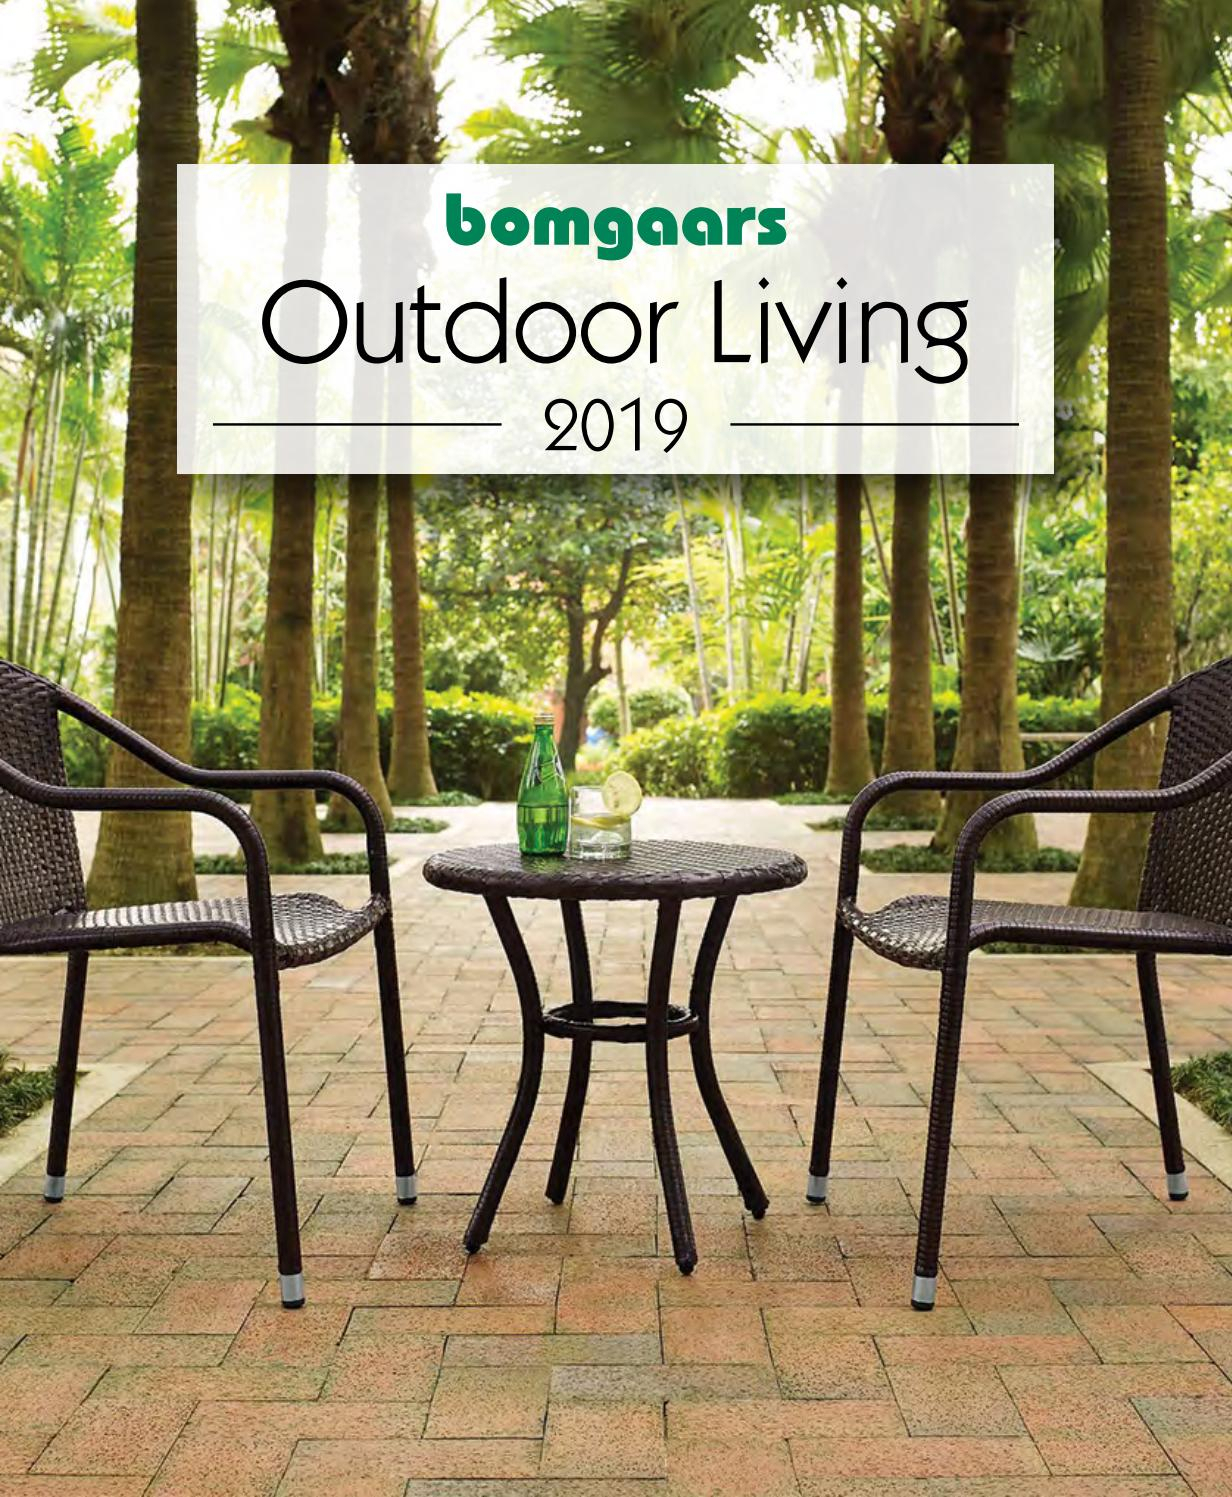 Bomgaars Outdoor Livingbomgaars – Issuu Inside Iron Grove Slatted Glider Benches (View 26 of 26)